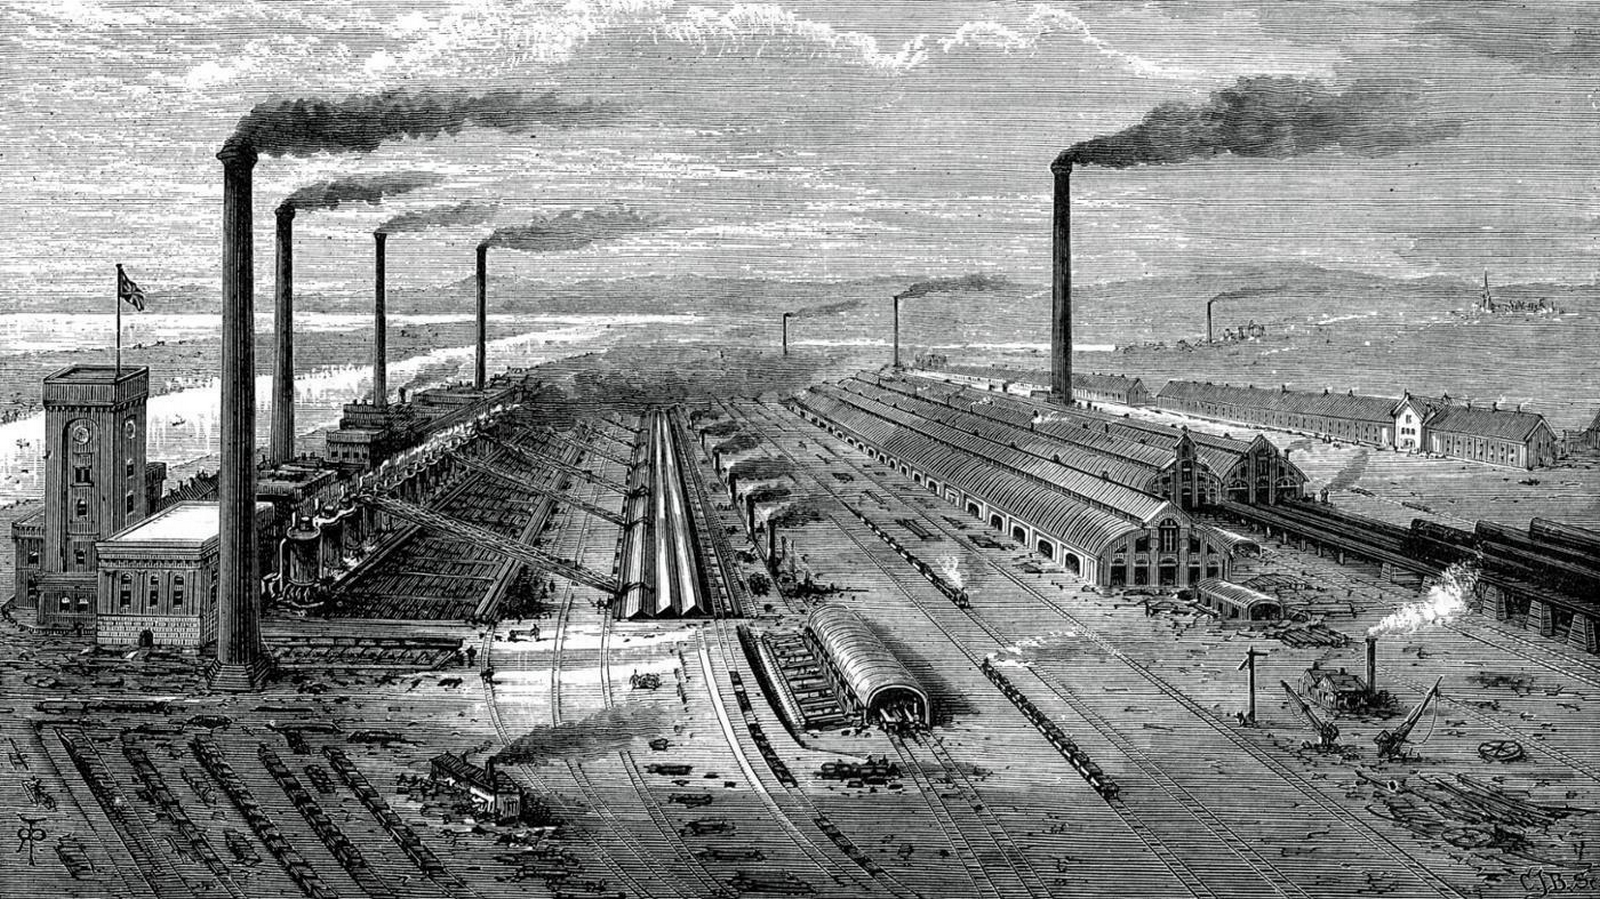 What is the impact of Industrial Revolution on architecture? - Sheet1